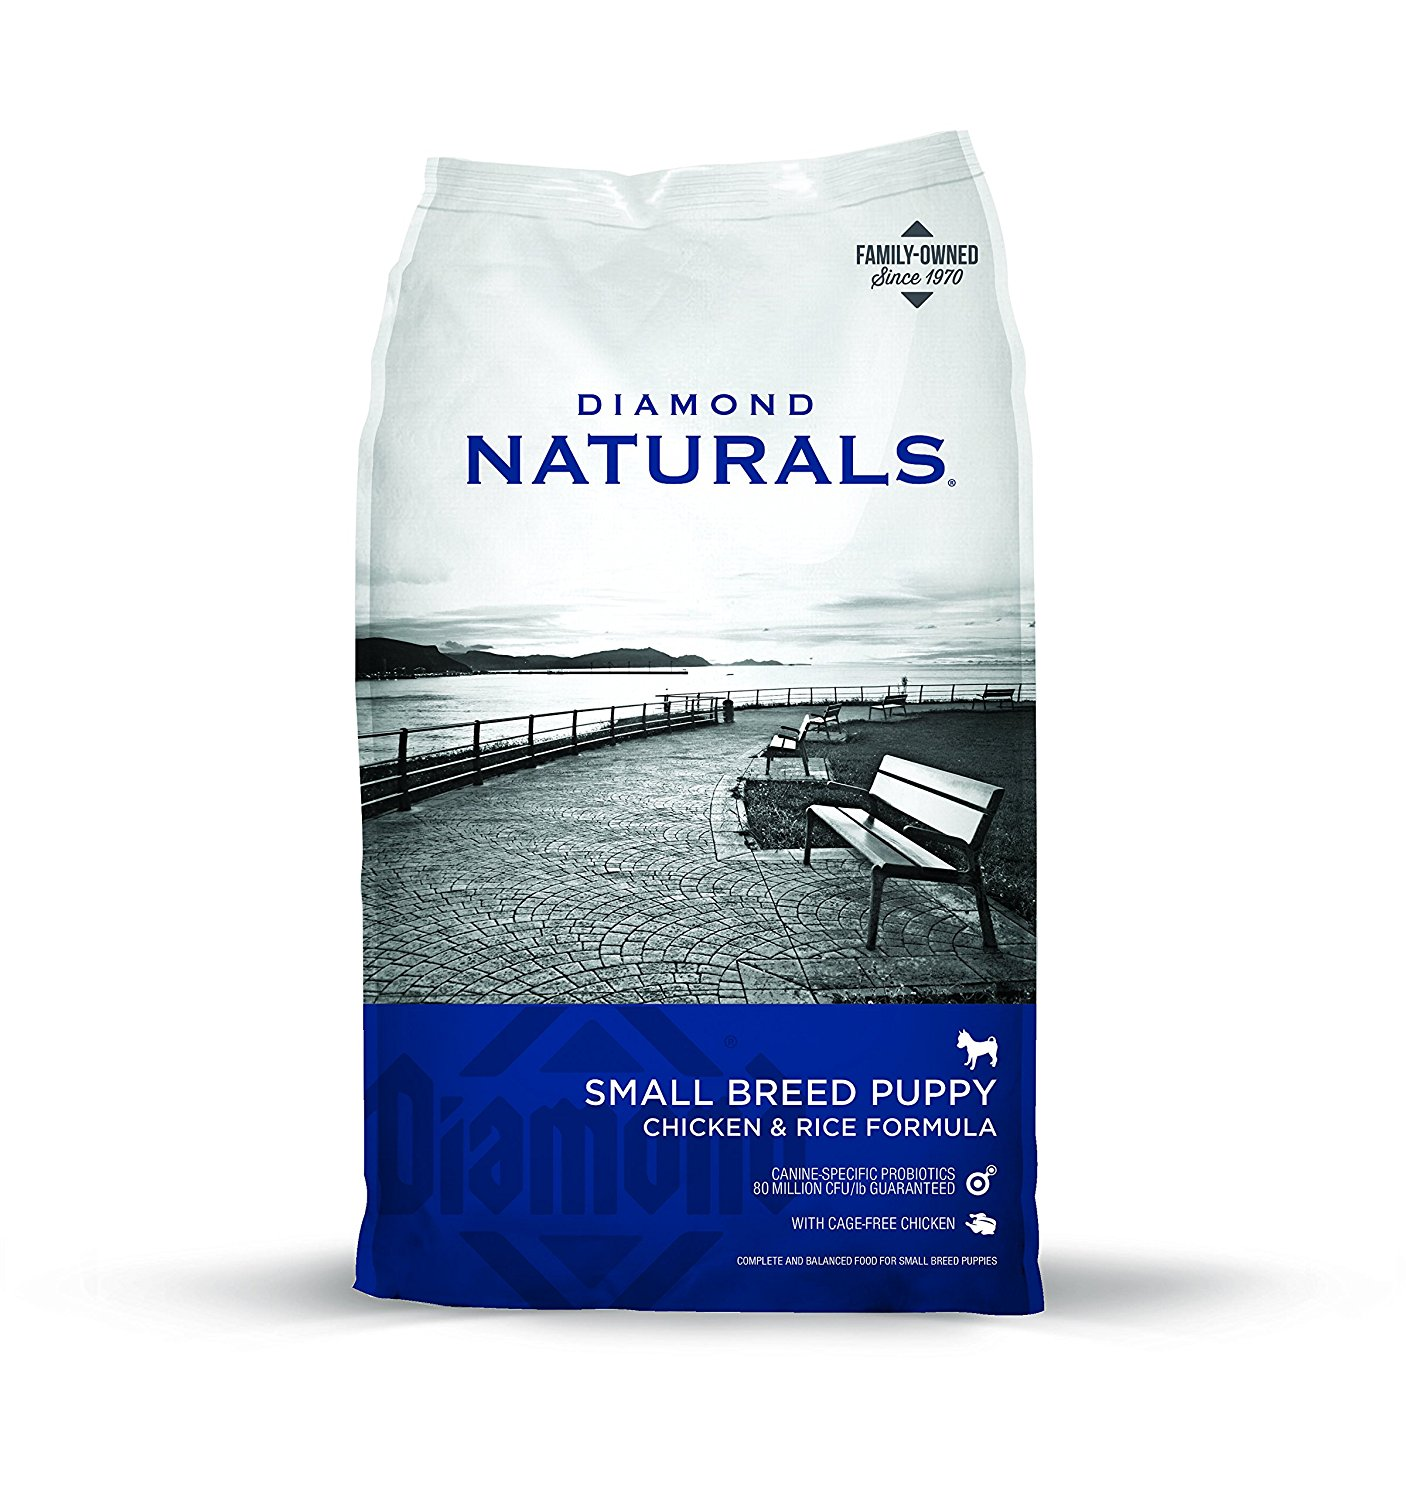 Puppy Food - Our recommended puppy food is Diamond Naturals Small Breed Puppy: Chicken and Rice. Yes.....even our Great Pyrenees get the small breed to start :) Although there are several very good foods out there, we choose this one specifically because of the kibble size. It is very small and easy to eat for puppies just beginning. For that reason, it is what we use to wean them off of mama.We strongly suggest that every puppy we send with his or her new family has at least one bag of this waiting at home. If you decide to switch after that, our feelings aren't hurt at all :) We just recommend that you select a food that at minimum: 1) Has meat as the first ingredient, and 2) Doesn't contain corn, wheat, or soy. We are able to provide a 40 lb bag of this food to our families who are driving to pick puppy up for an added $45 if that works better for you. However, this is not an option for those flying.If/when you do choose to switch foods, make sure you switch over slowly, mixing this food and the new food together for several days before switching totally.https://amzn.to/2Mj2KFd